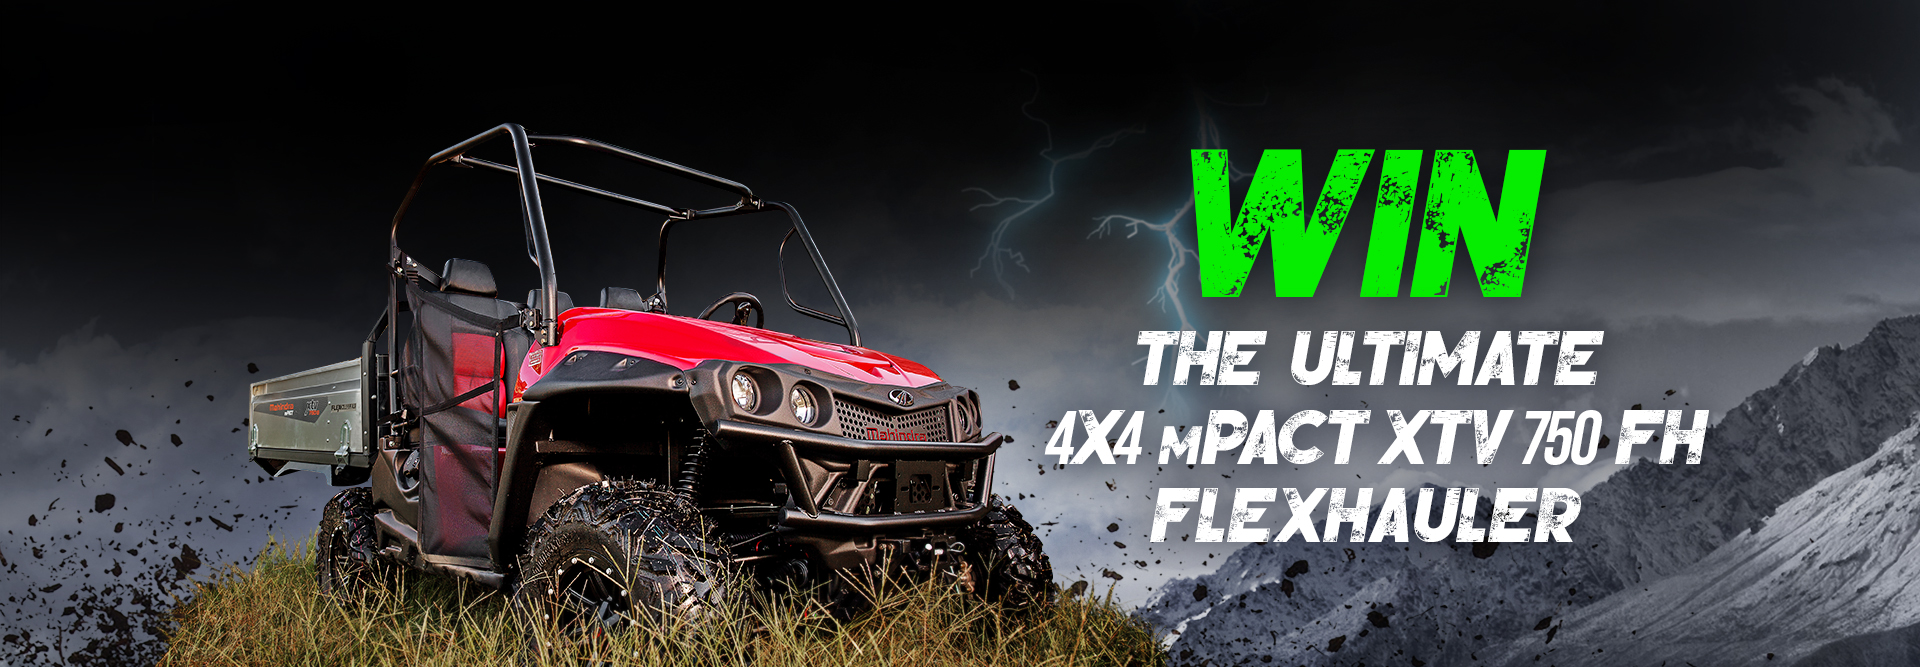 Check Out the Features of this New Mahindra XTV Up For Grabs